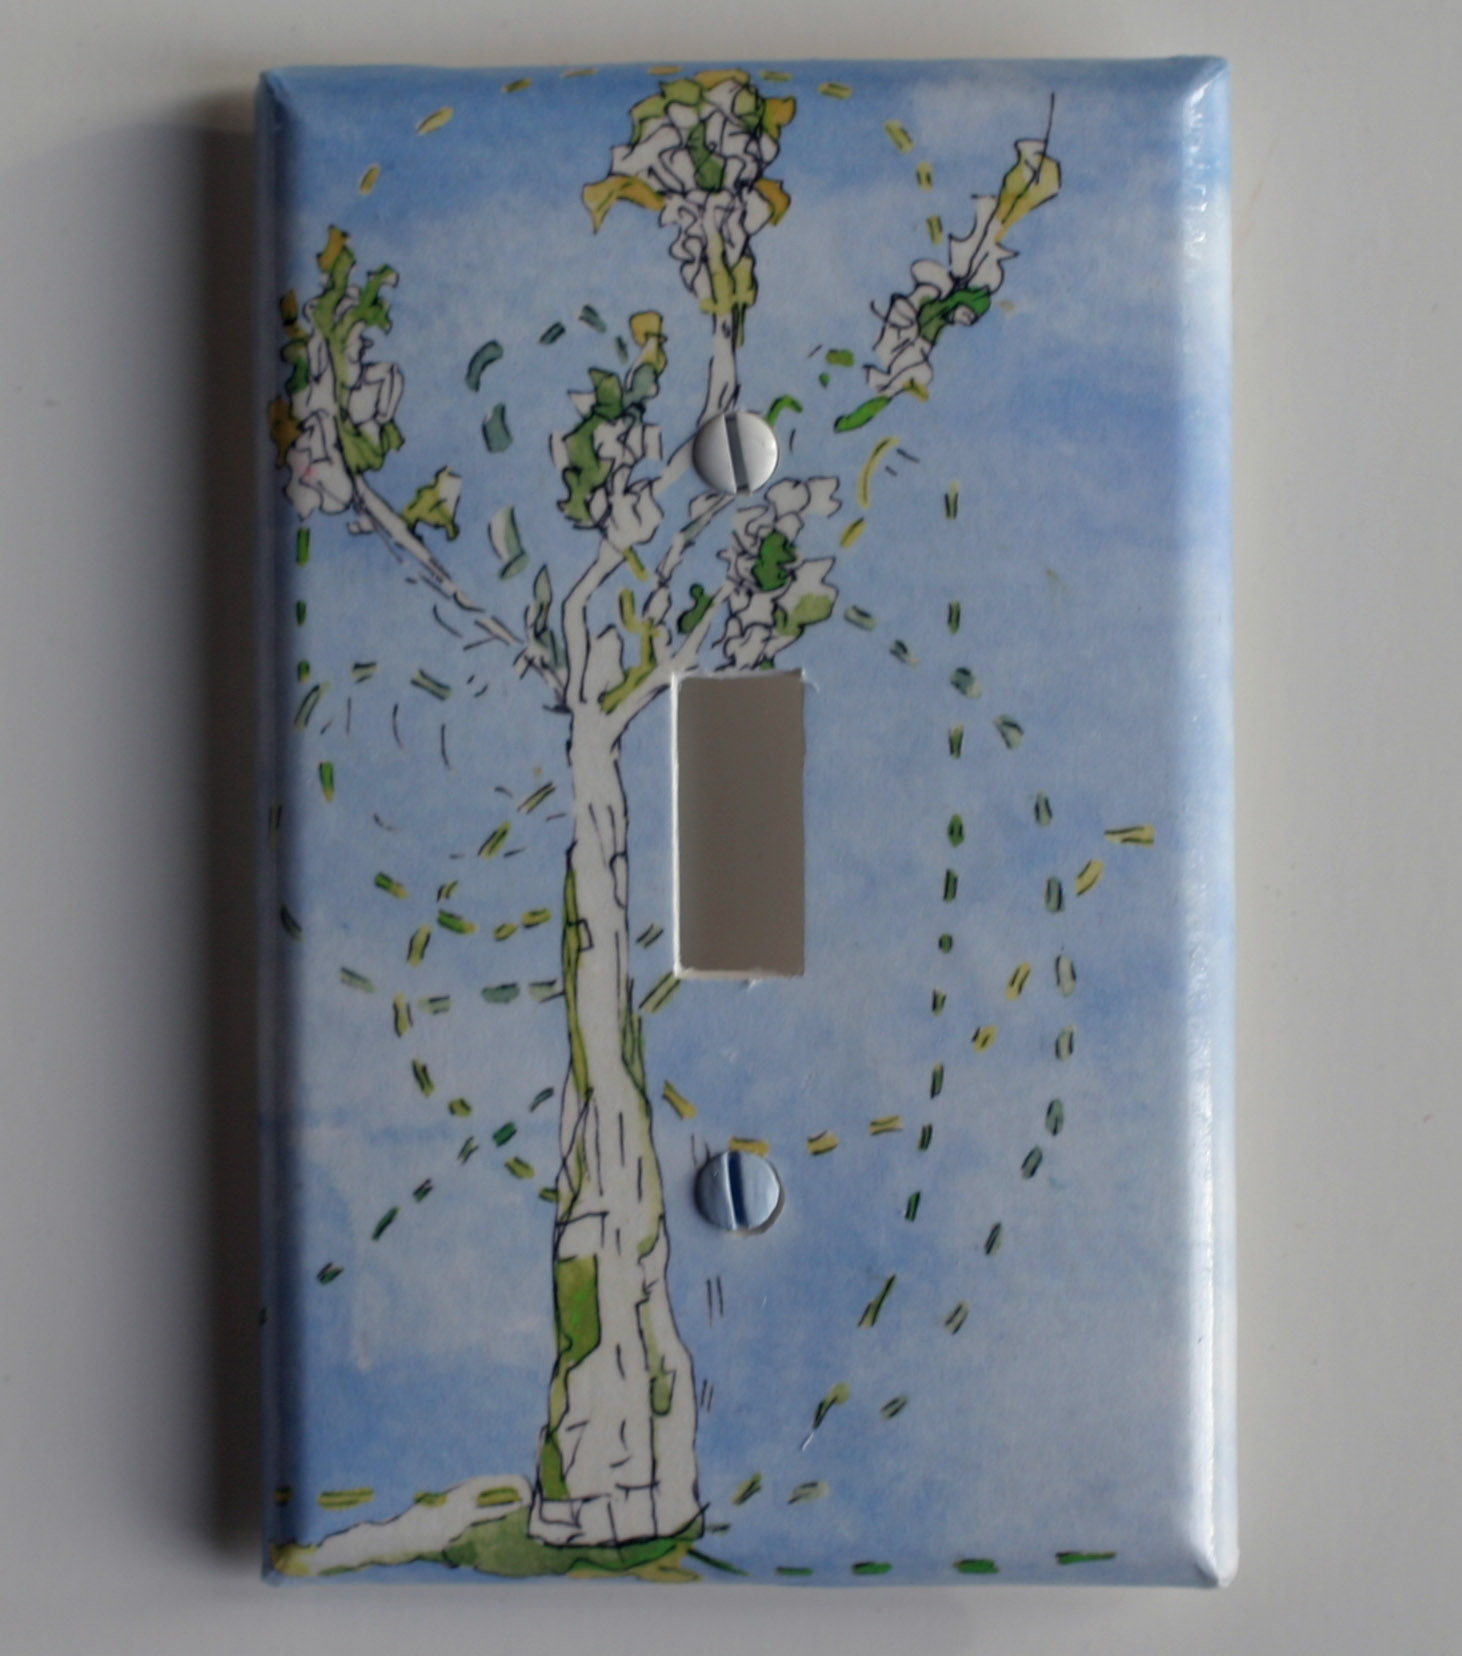 Decorative Light Plate Covers Decorative Light Switch Plate Cover Gallery Idillard